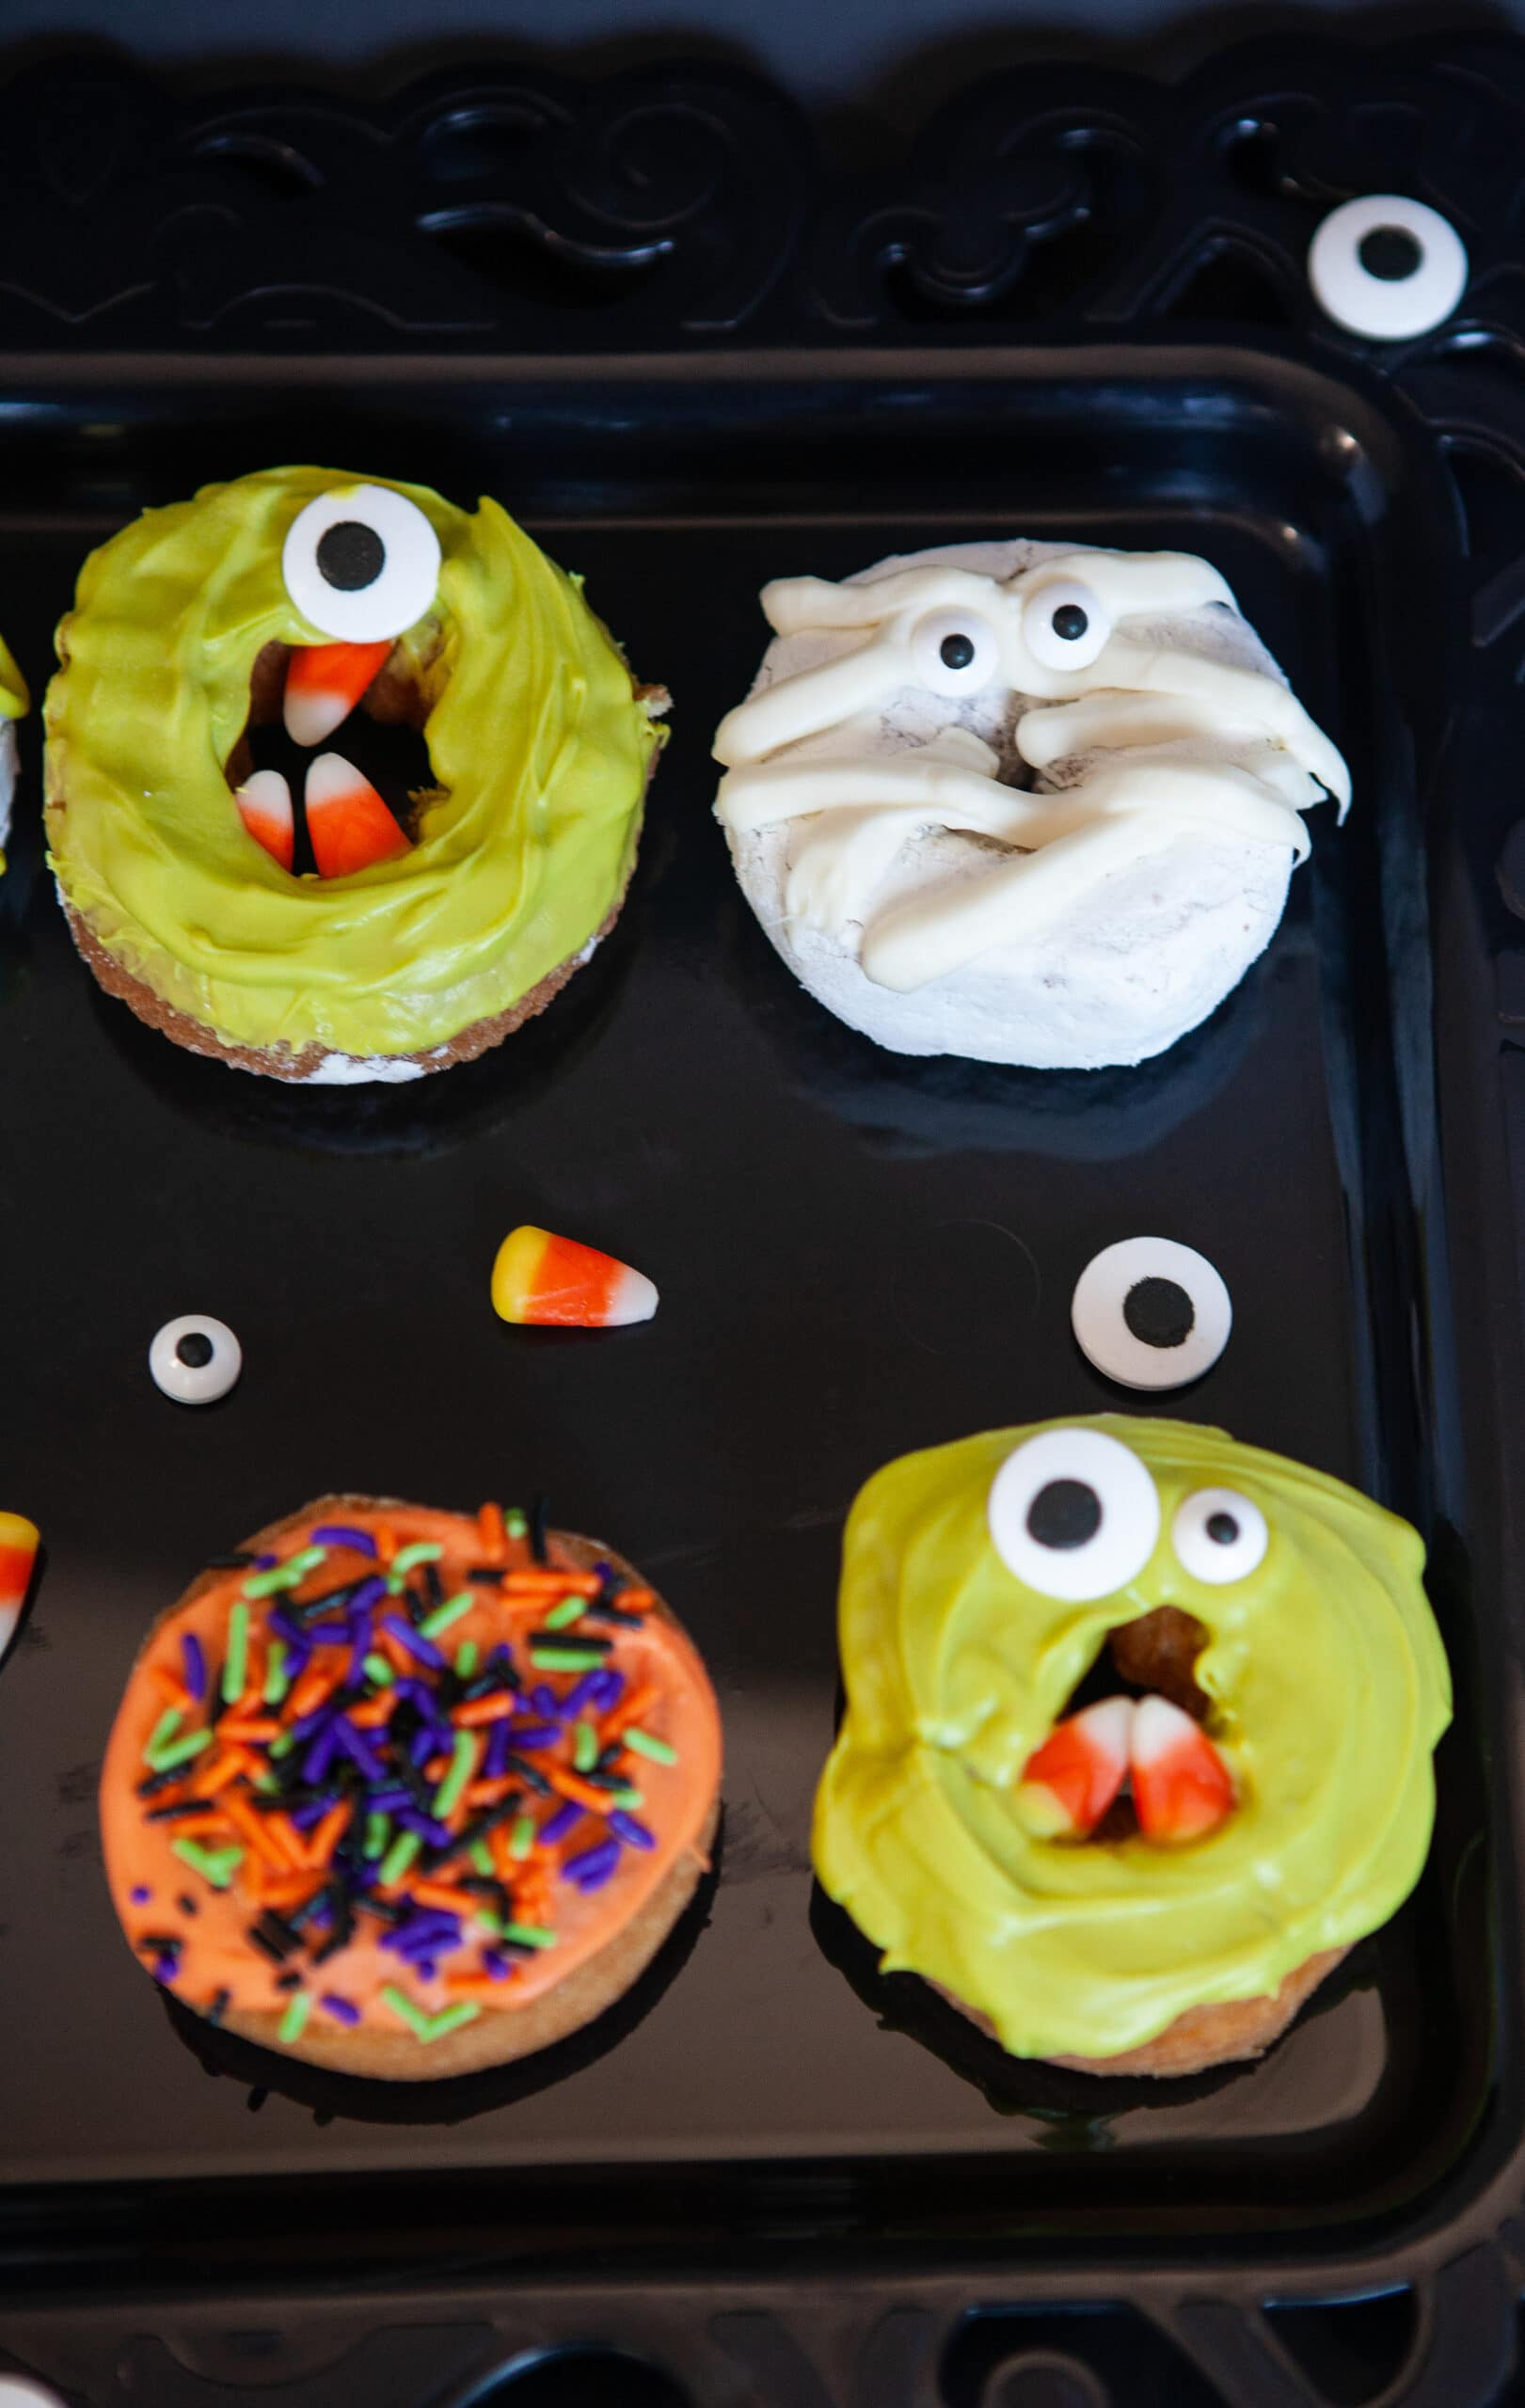 Monster Donuts Monster. Make these spooky cute Monster Donuts for your next Halloween event. Made with your favorite donuts as a base, you can create and decorate vampires, mummies, and other iconic edible Halloween monsters.